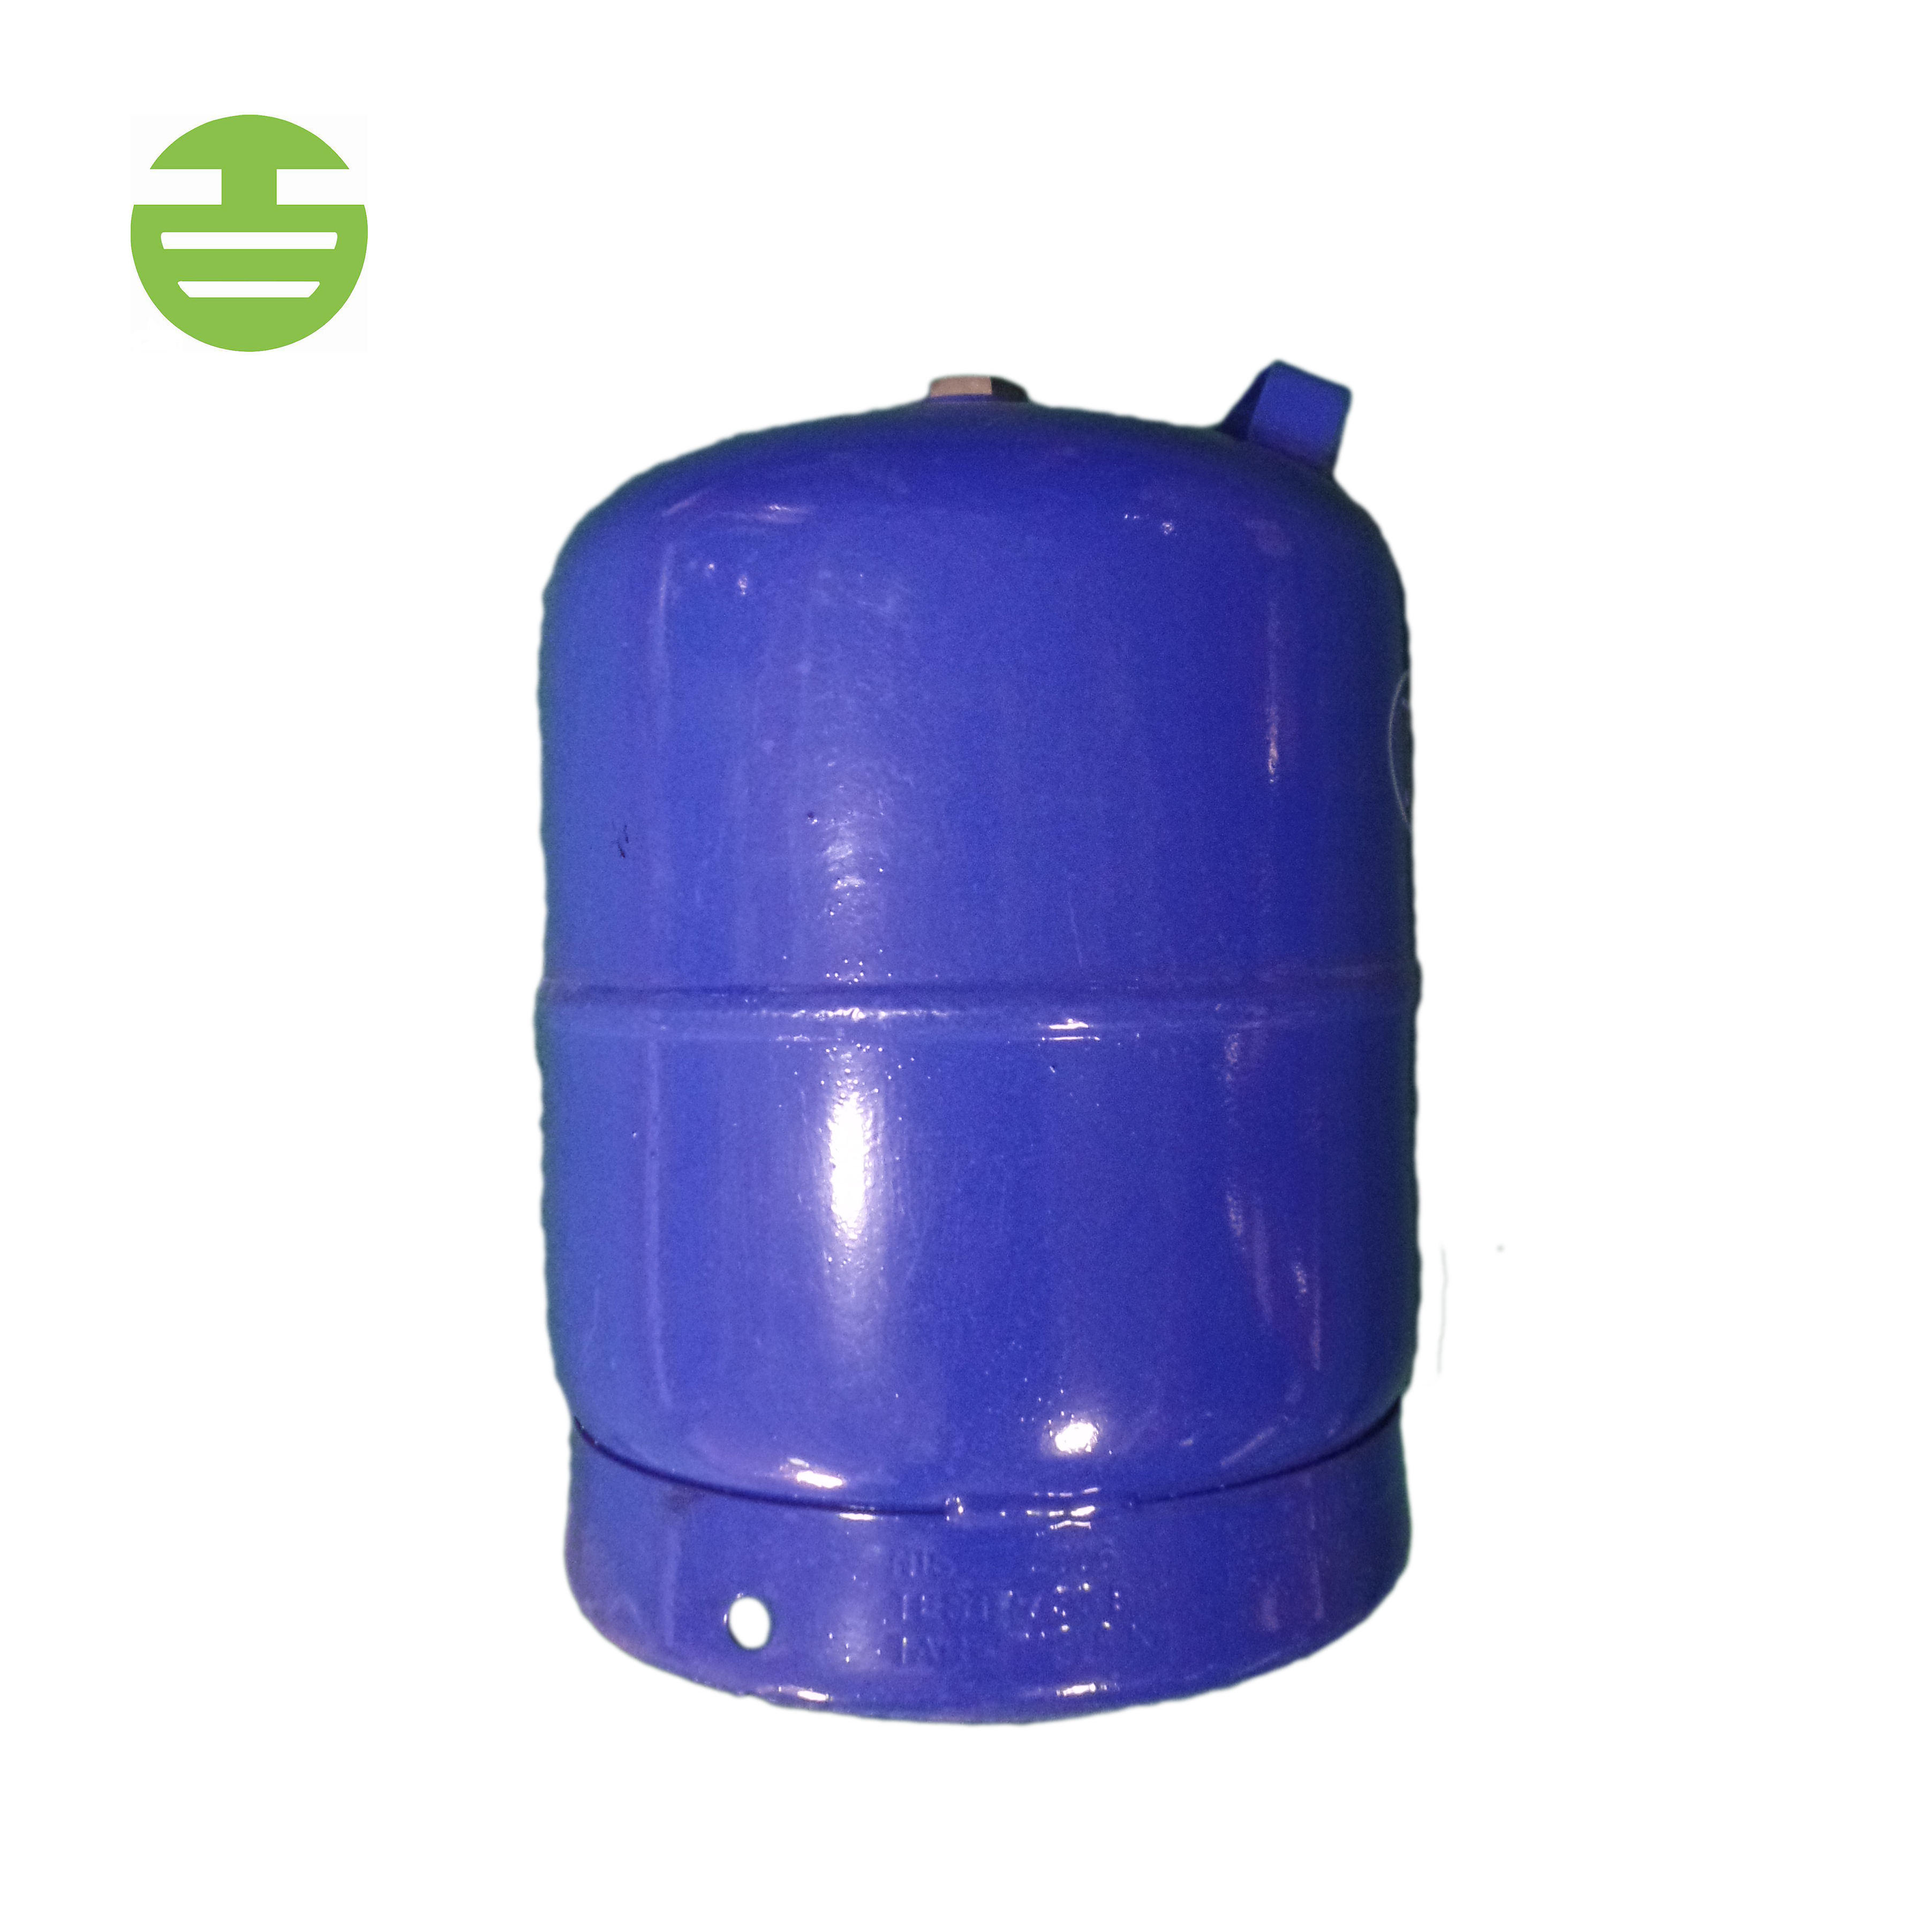 5kg 12L empty LPG gas cylinders for cooking camping for Afric market